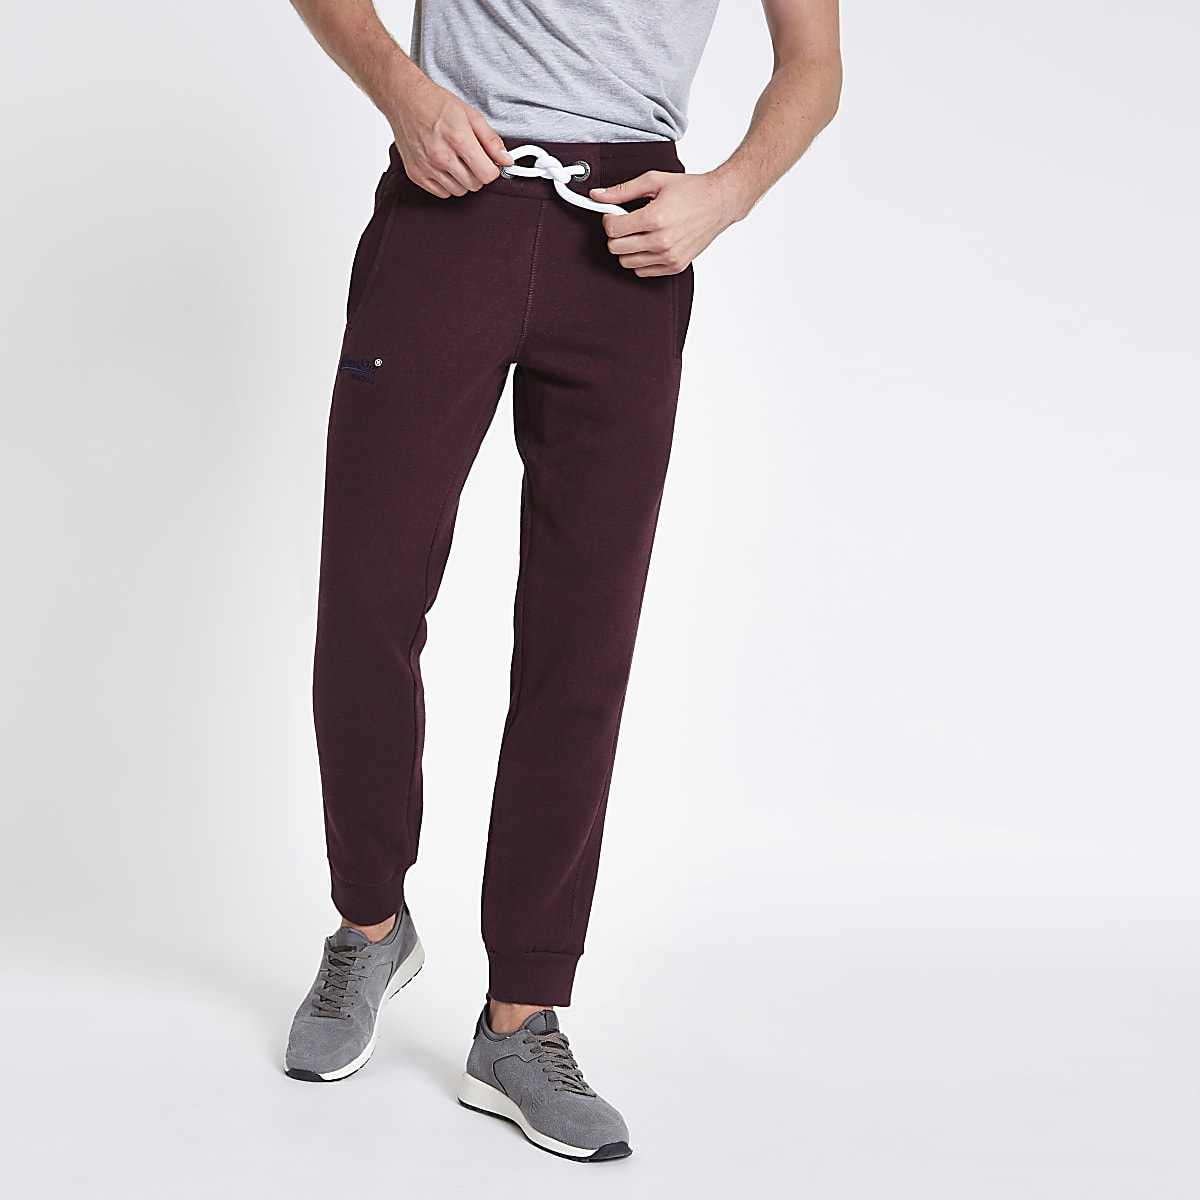 Superdry burgundy cuffed joggers